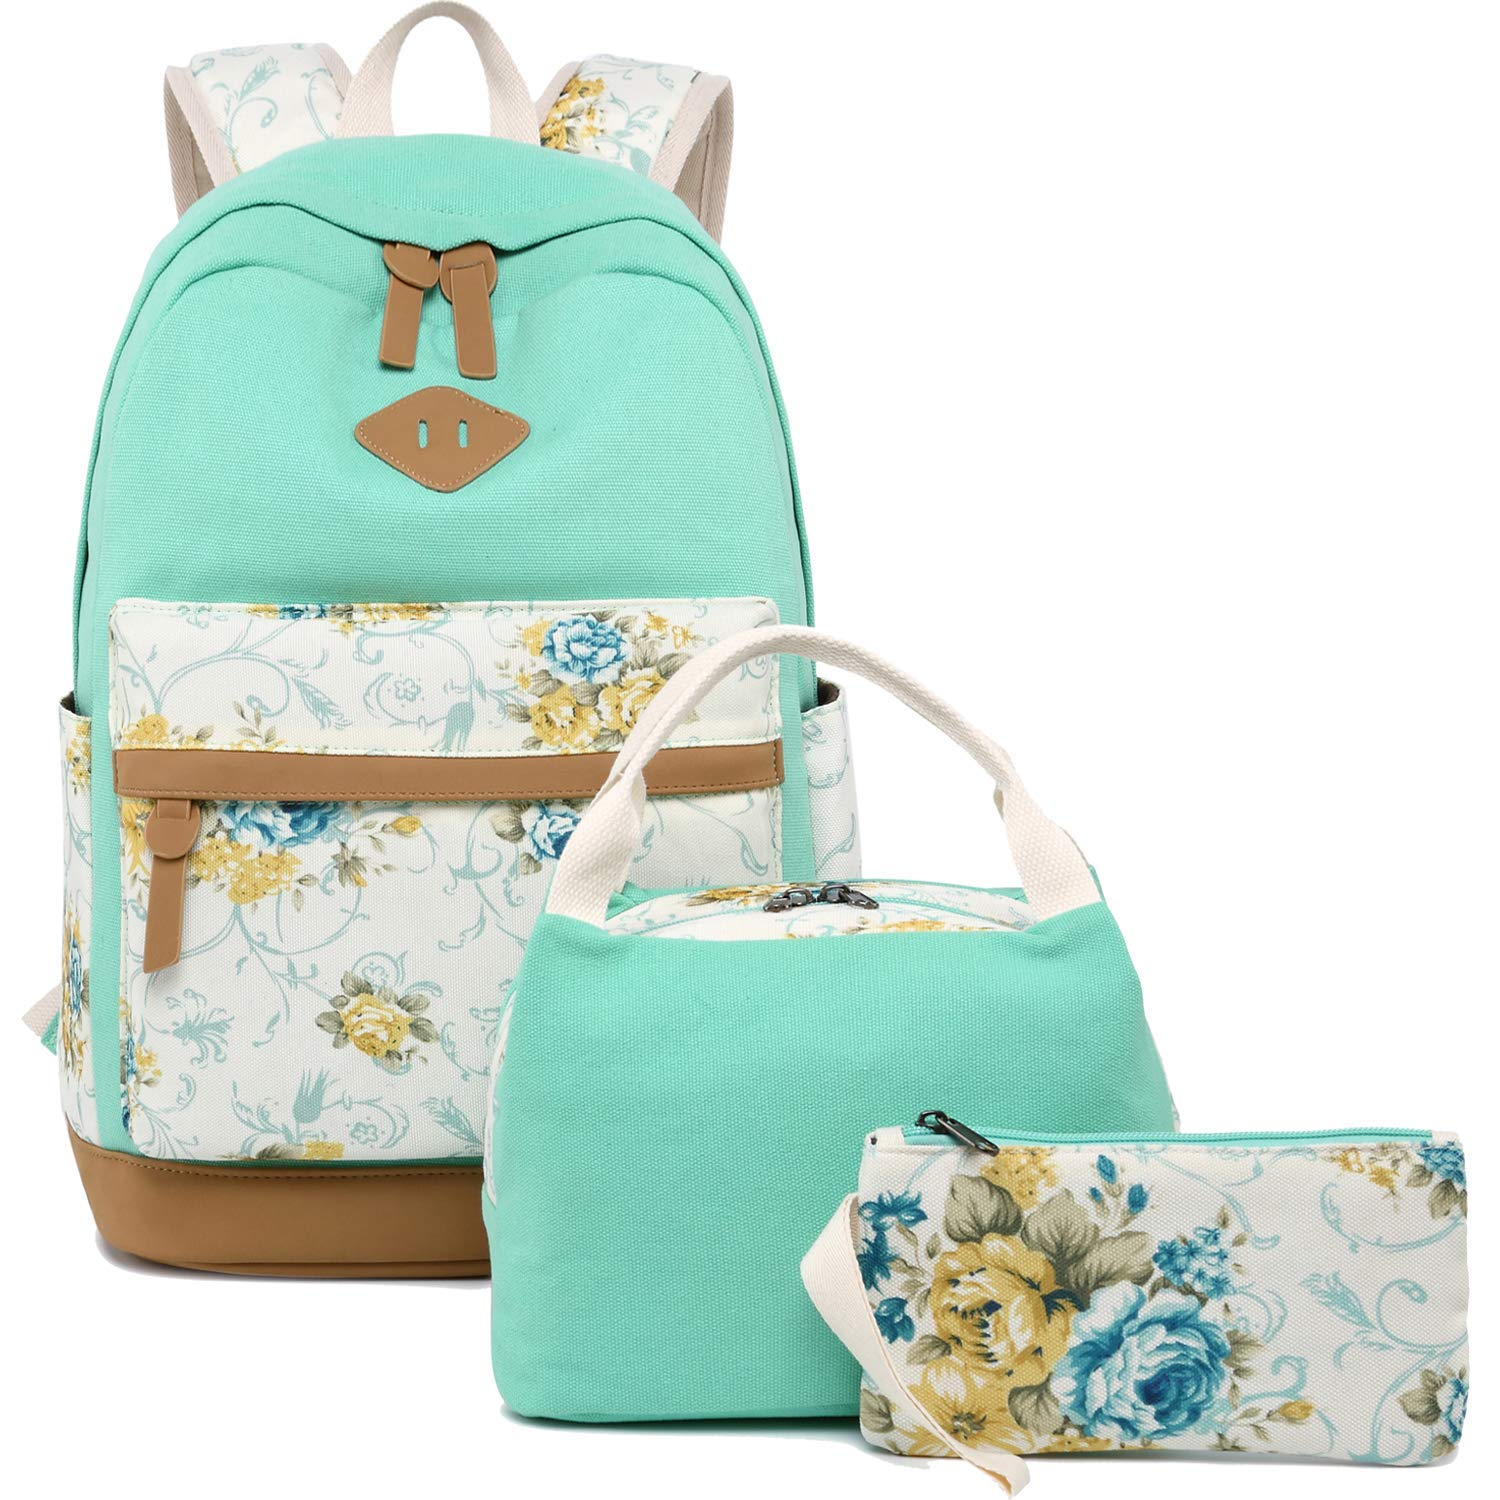 b8f3e8039298 Get Quotations · BLUBOON Teens Backpack for School Girls Bookbags Set  Canvas Laptop Backpack Lunch Bag Pencil Purse (